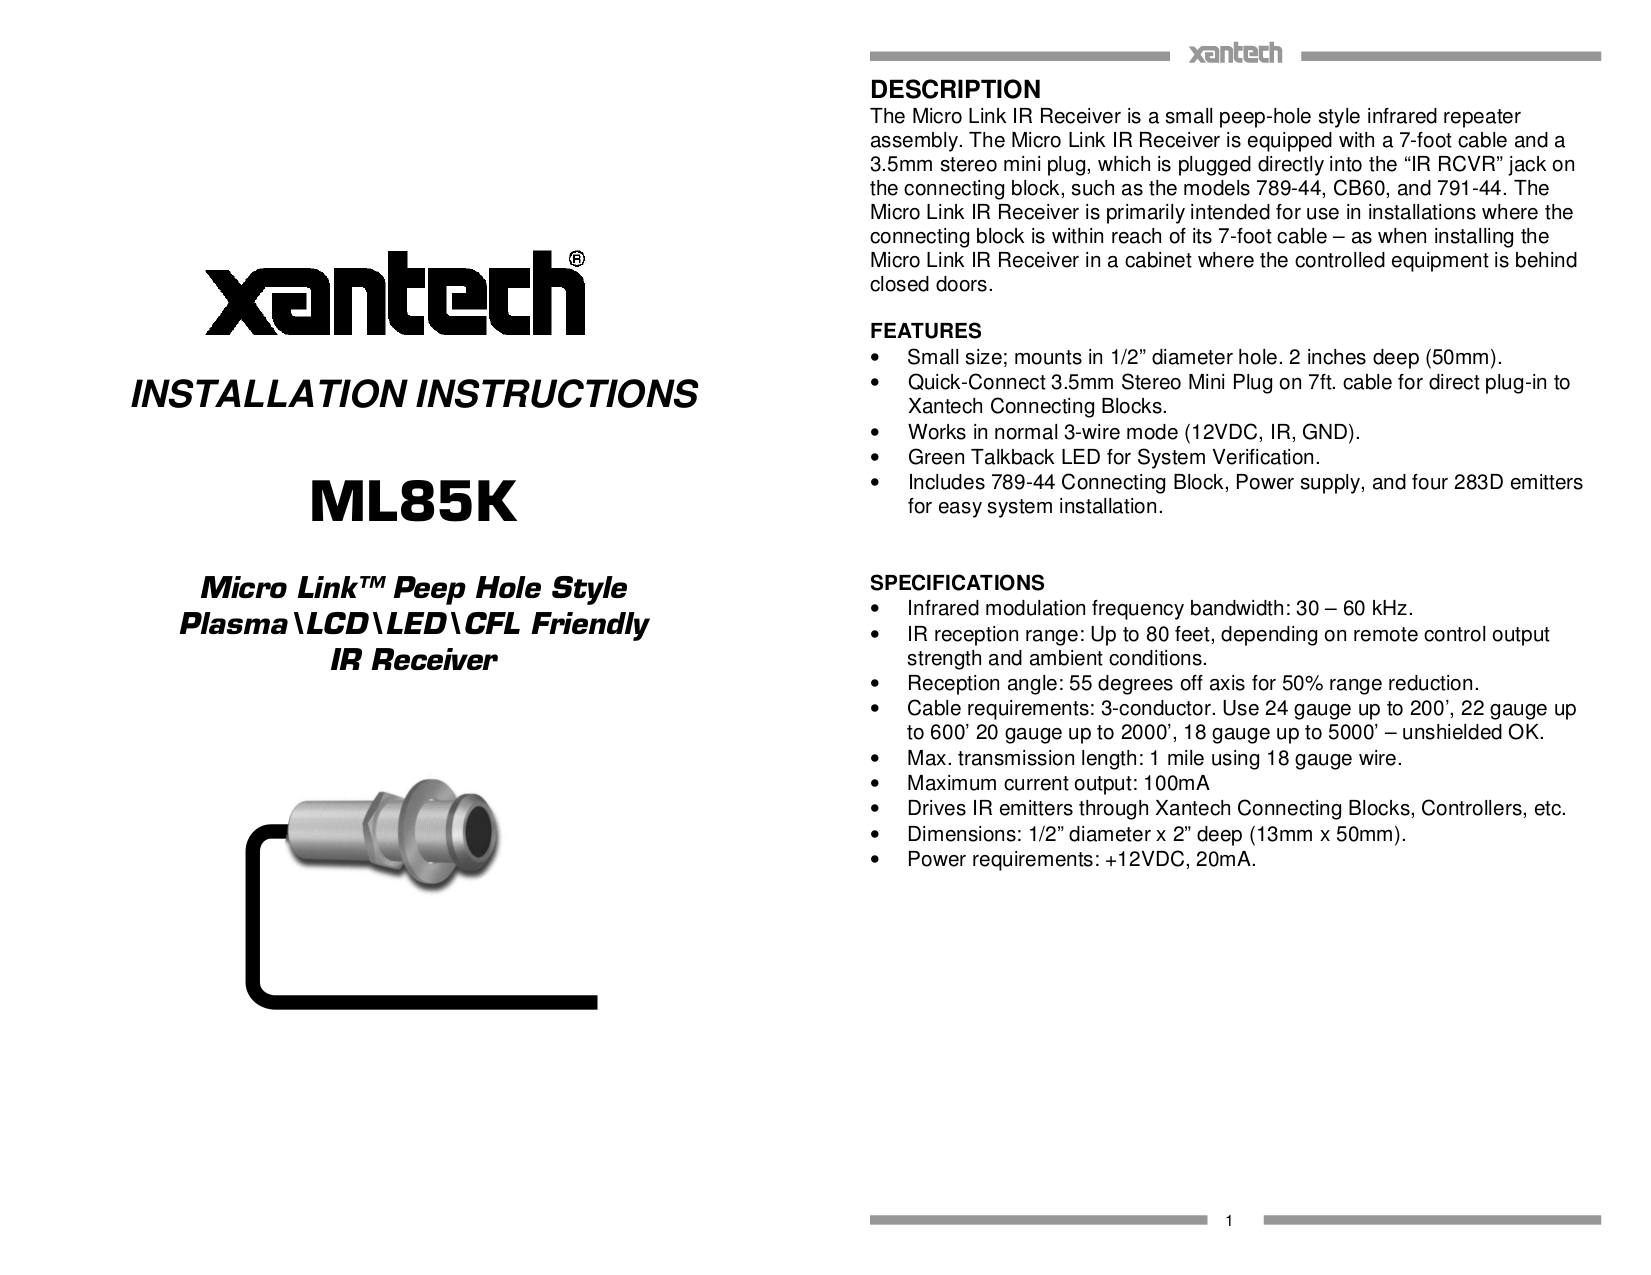 81223K.pdf 0 download free pdf for xantech cb60 connecting blocks other manual xantech 789-44 wiring diagram at suagrazia.org